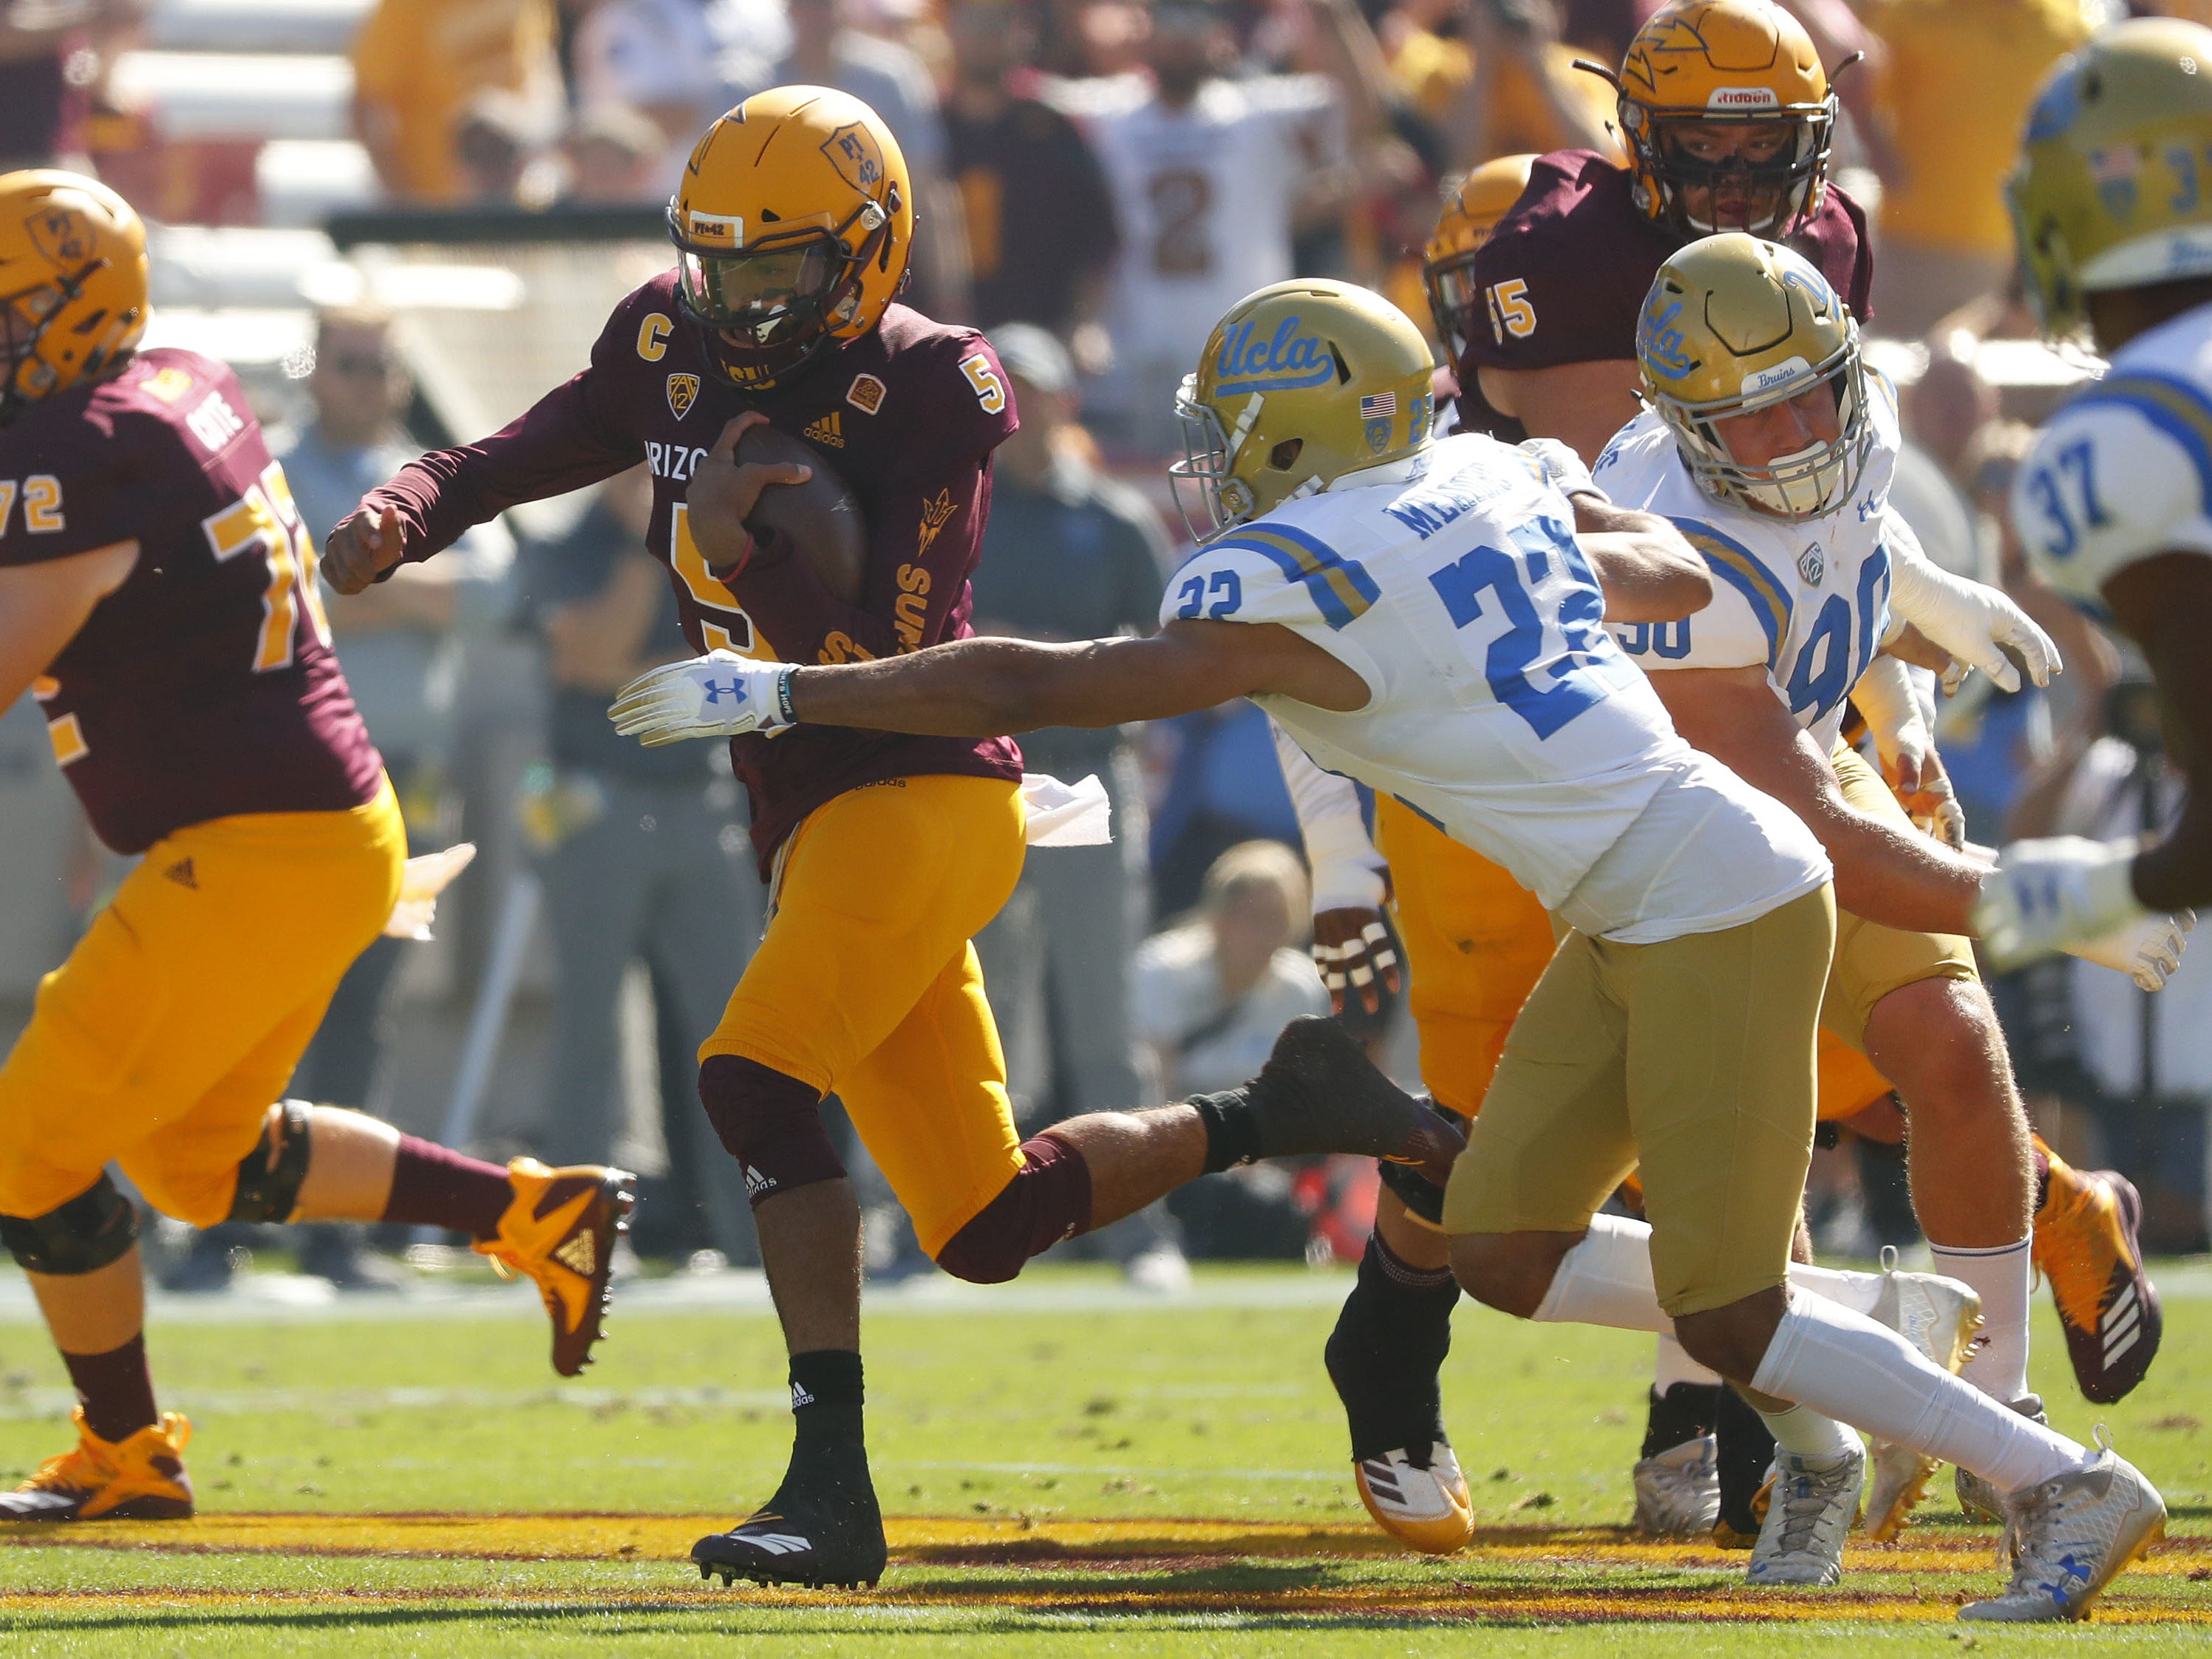 ASU's Manny Wilkins (5) runs downfield against UCLA's Nate Meadors (22) during the first half at Sun Devil Stadium in Tempe, Ariz. on November 10, 2018.